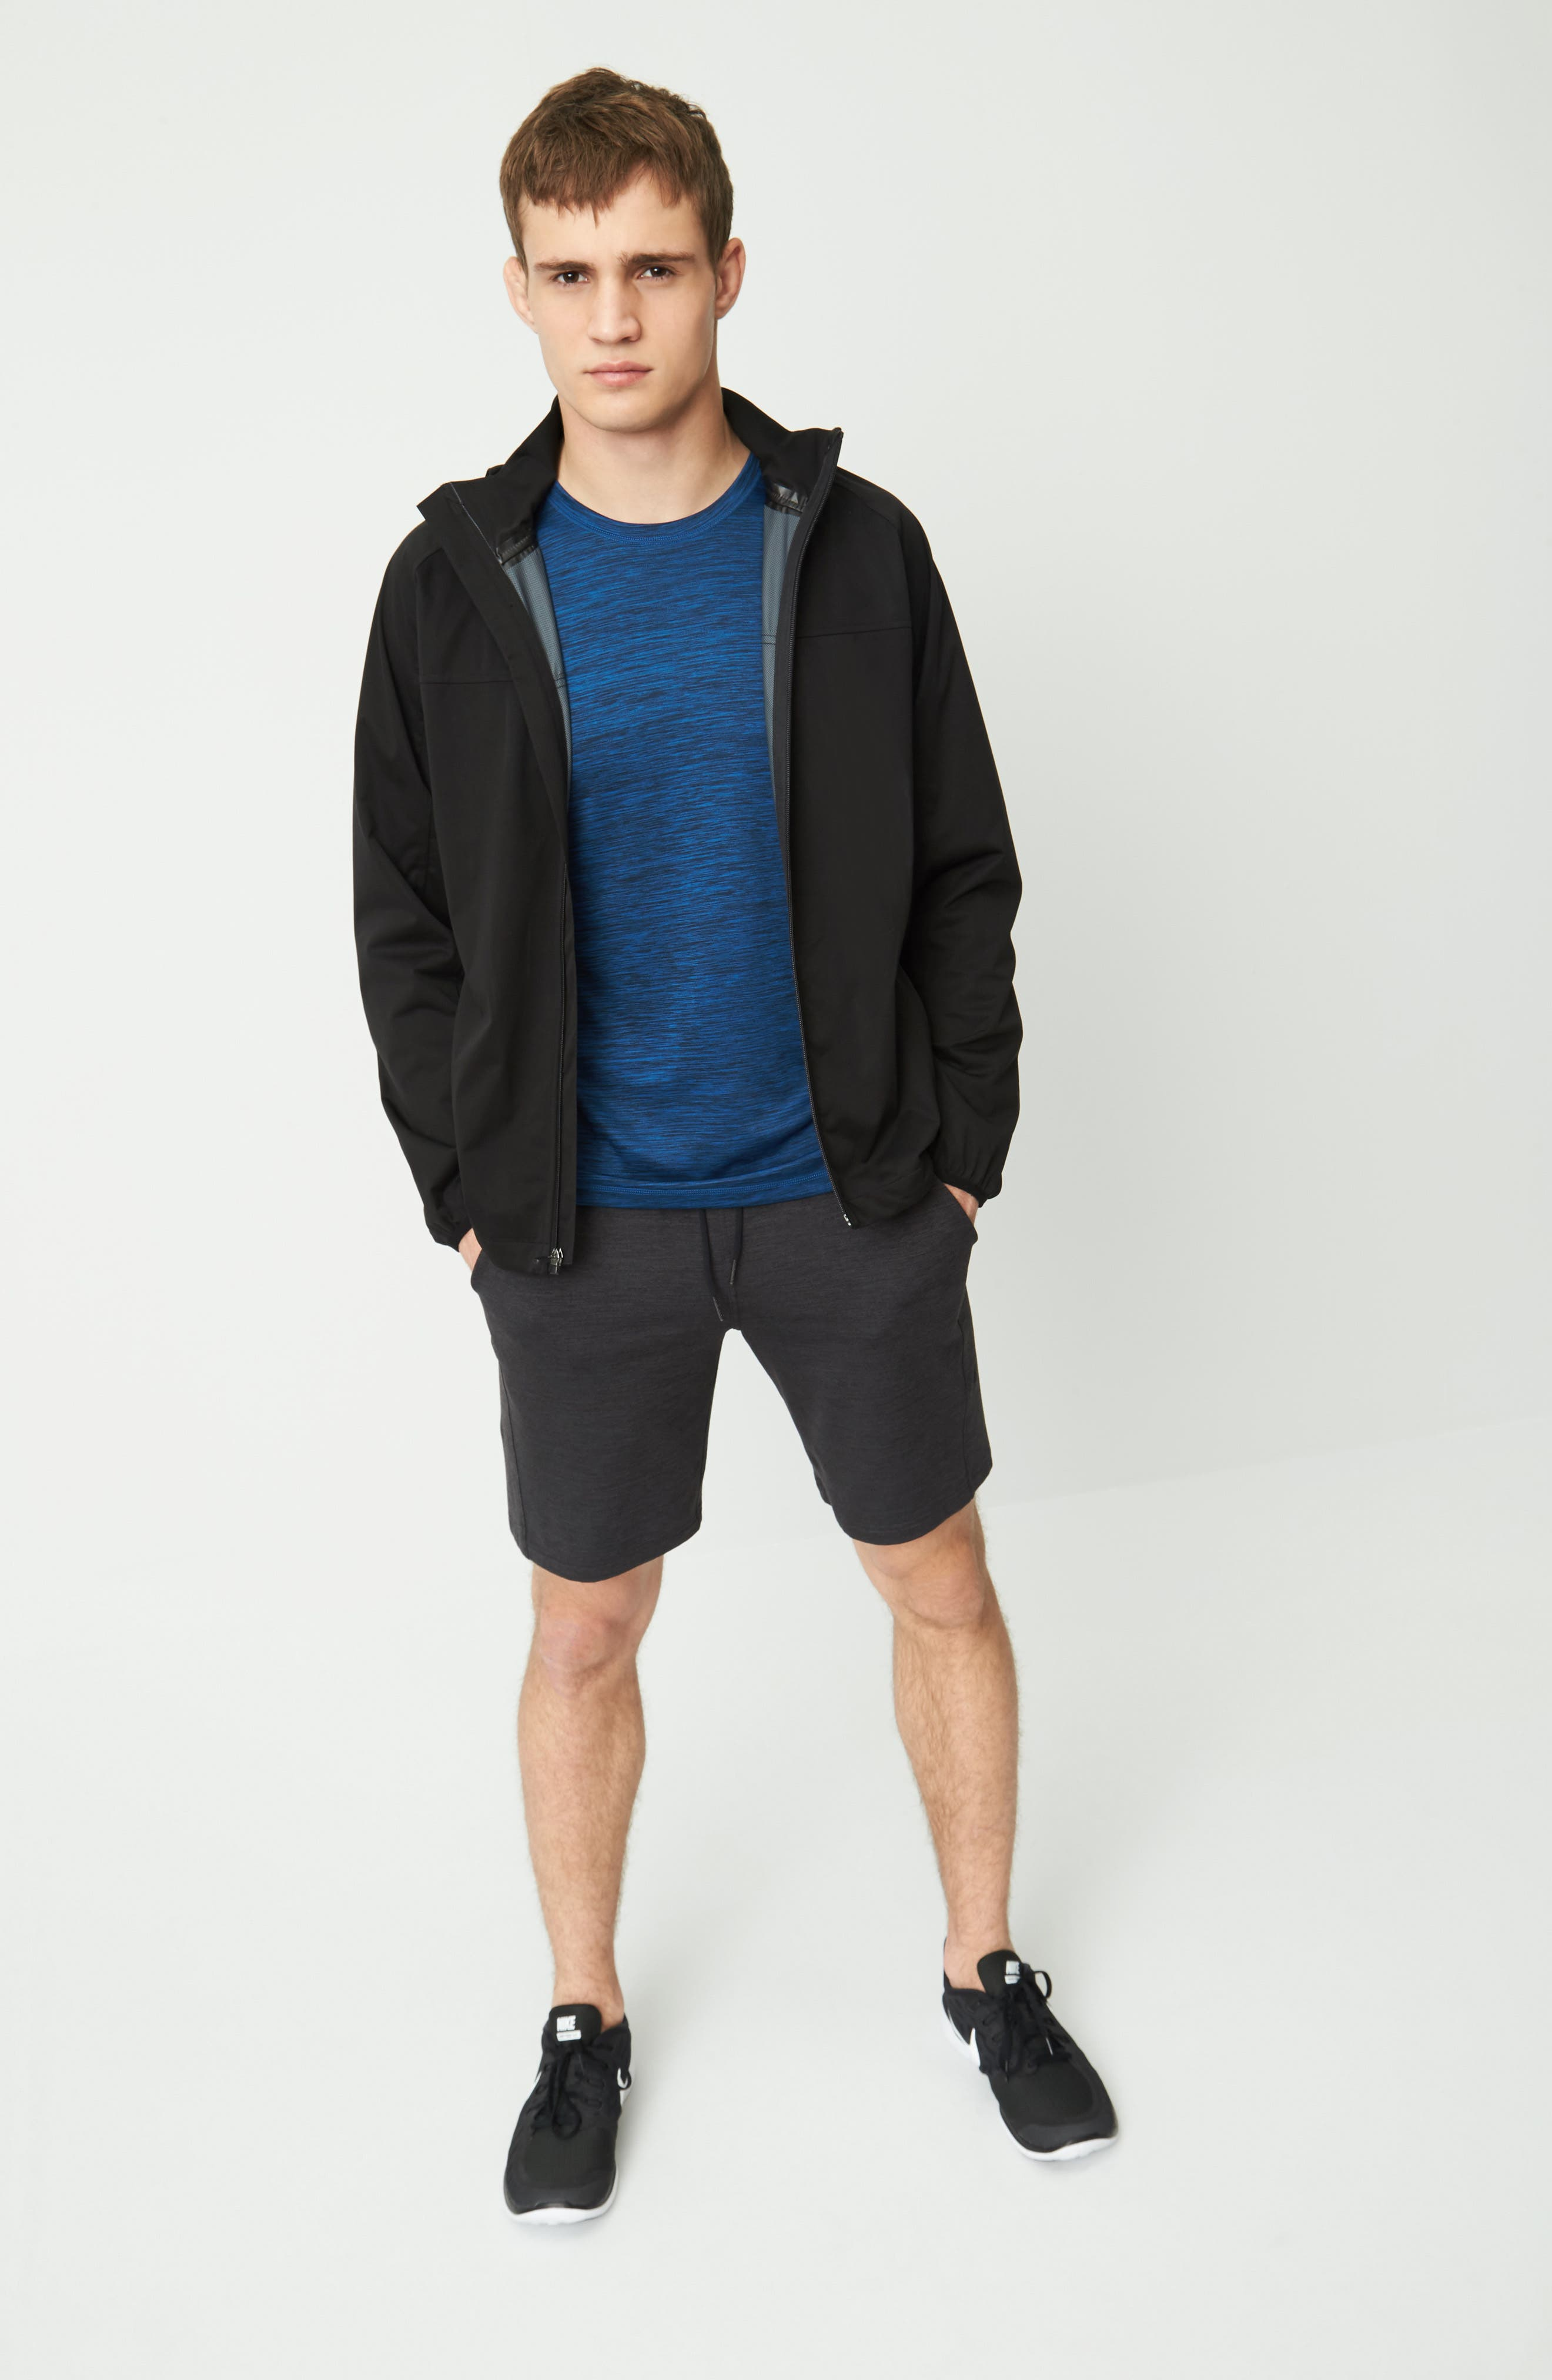 Zella Jacket, T-Shirt & Shorts Outfit with Accessories